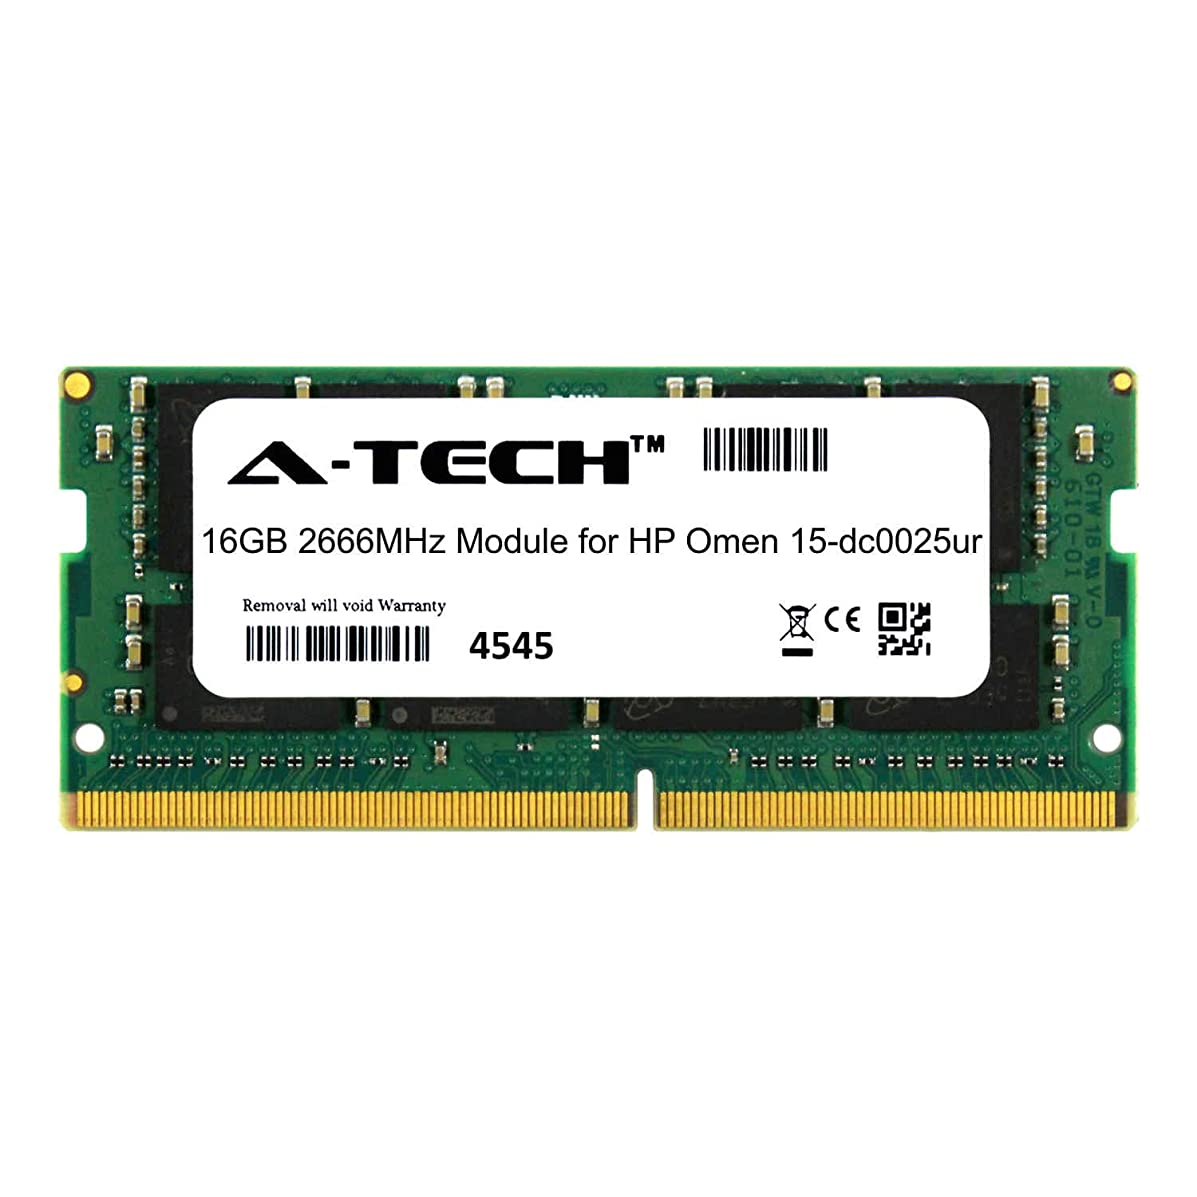 A-Tech 16GB Module for HP Omen 15-dc0025ur Laptop & Notebook Compatible DDR4 2666Mhz Memory Ram (ATMS280639A25832X1)